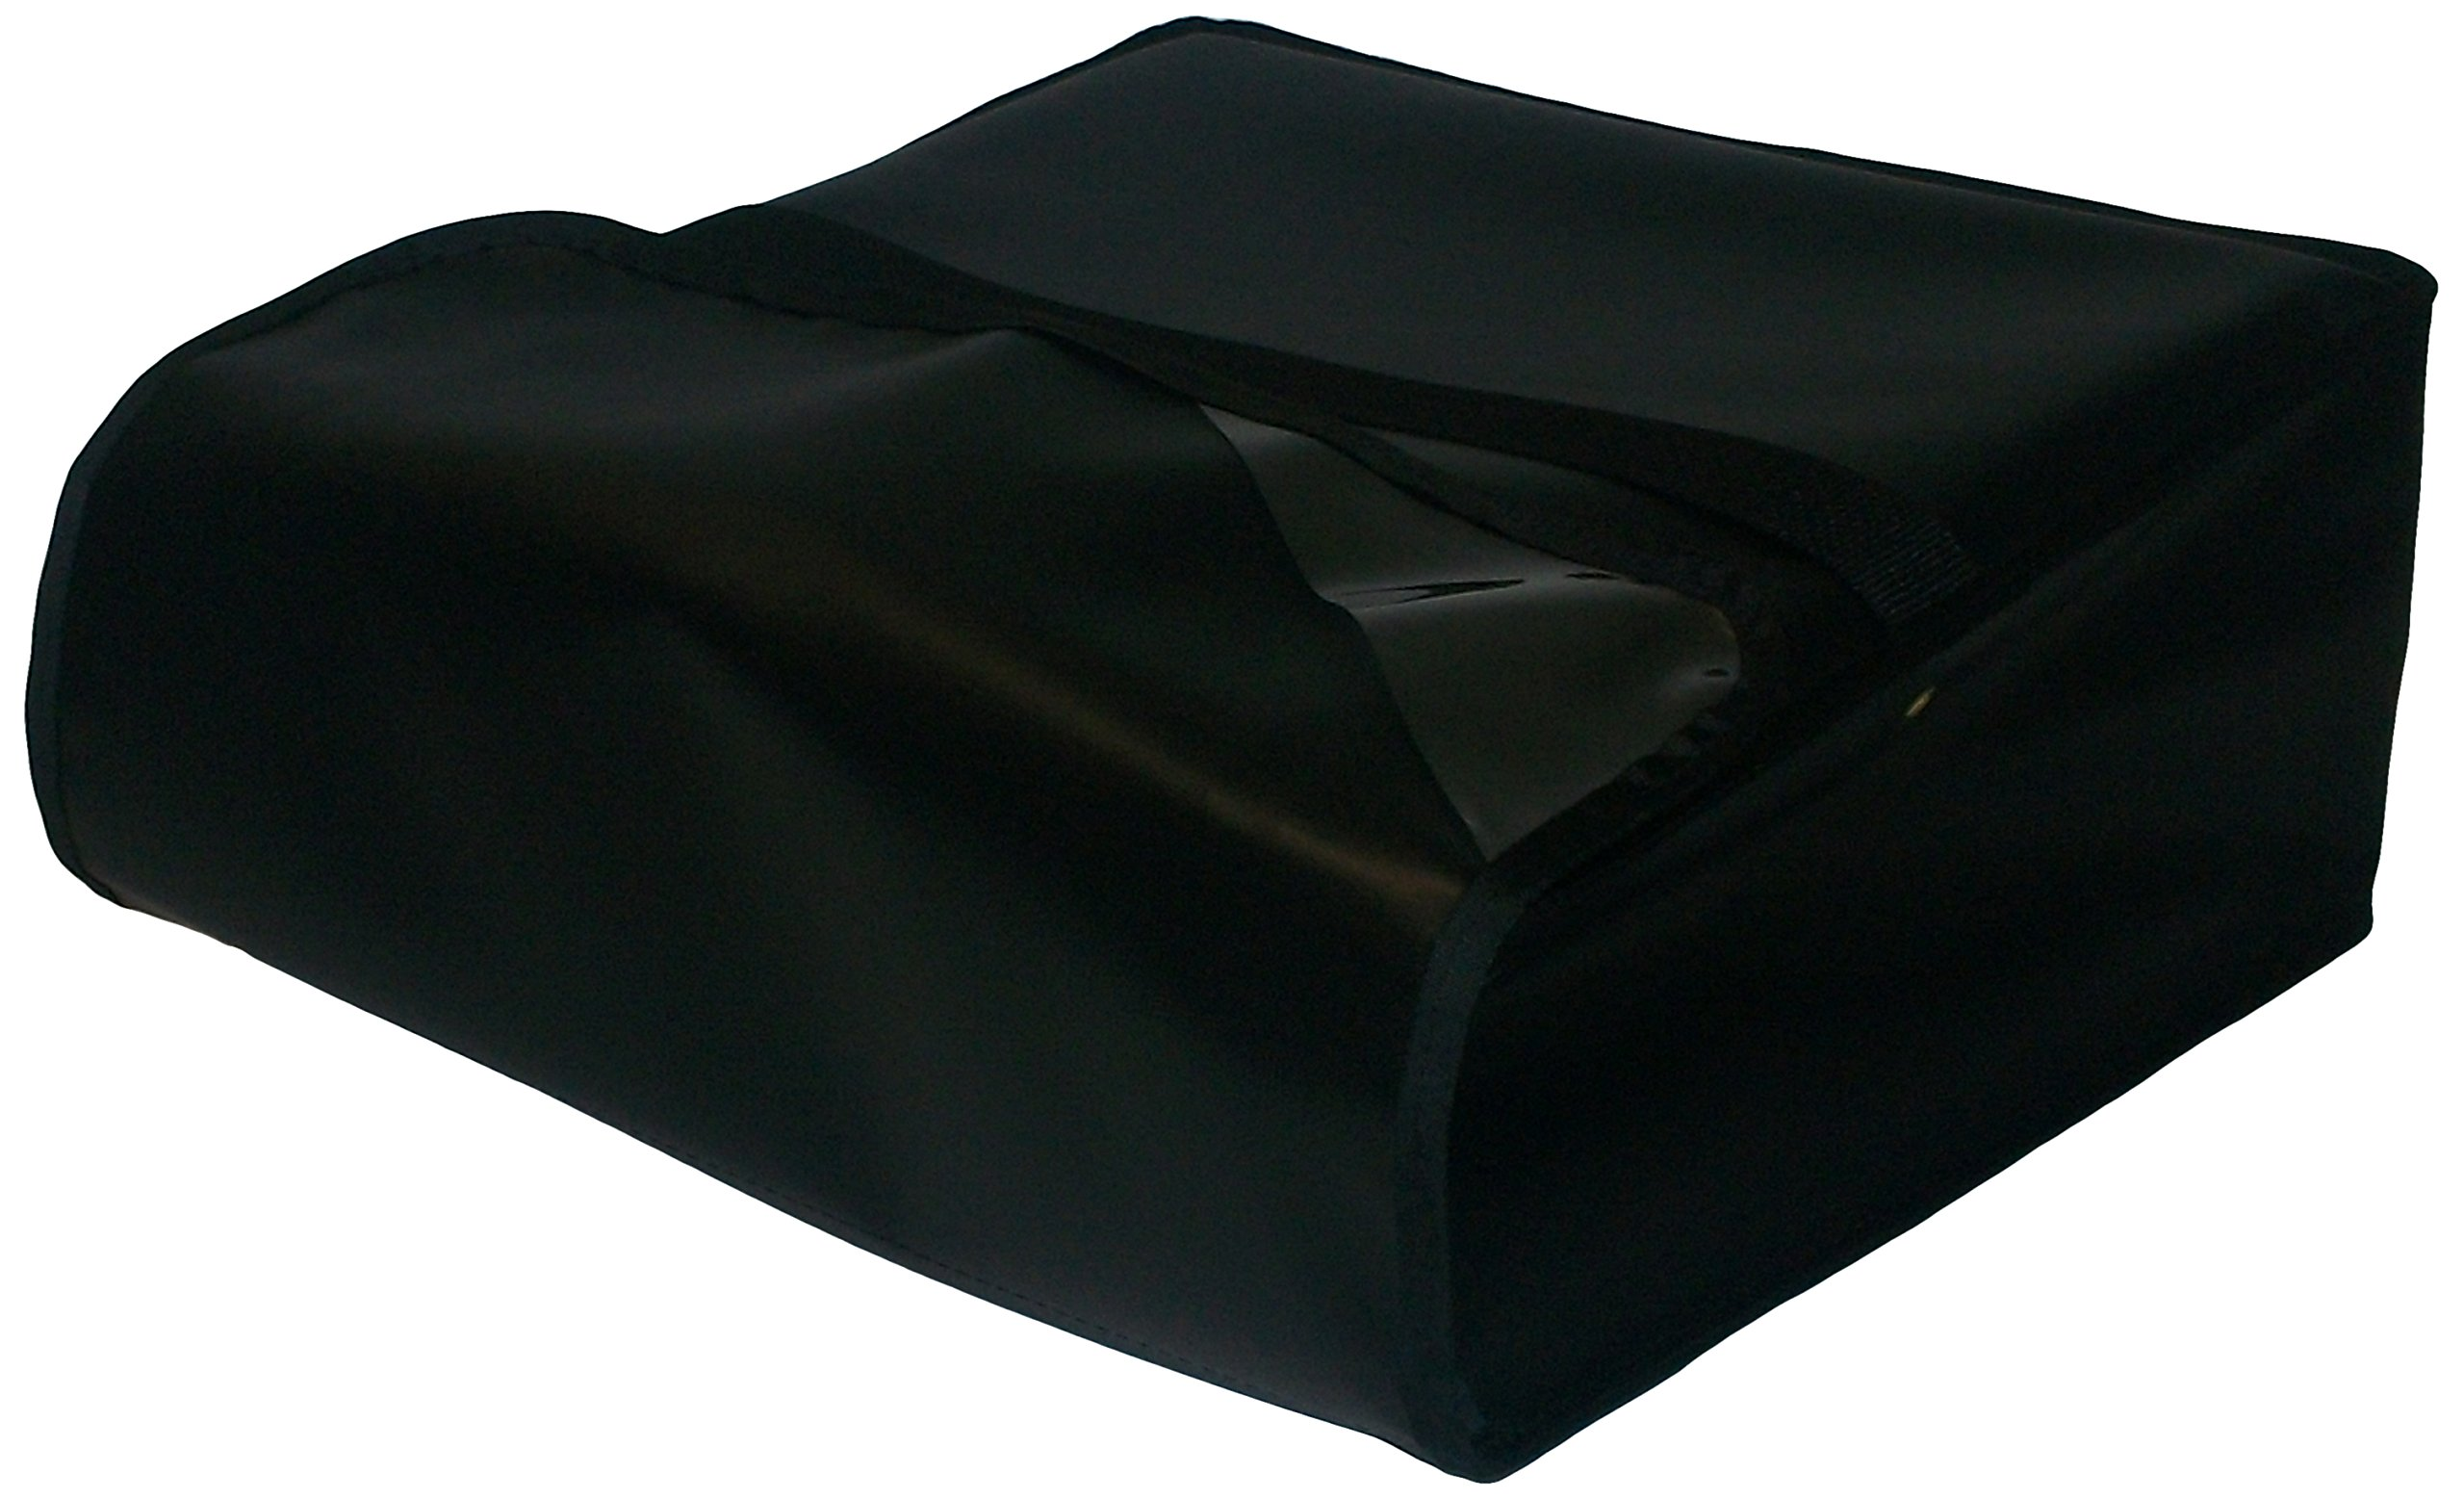 TCB Insulated Bags PK-316-Black Insulated Pizza Delivery Bag, Holds 3 Each 14'' Pizzas, 16'' x 16'' x 7'', Black